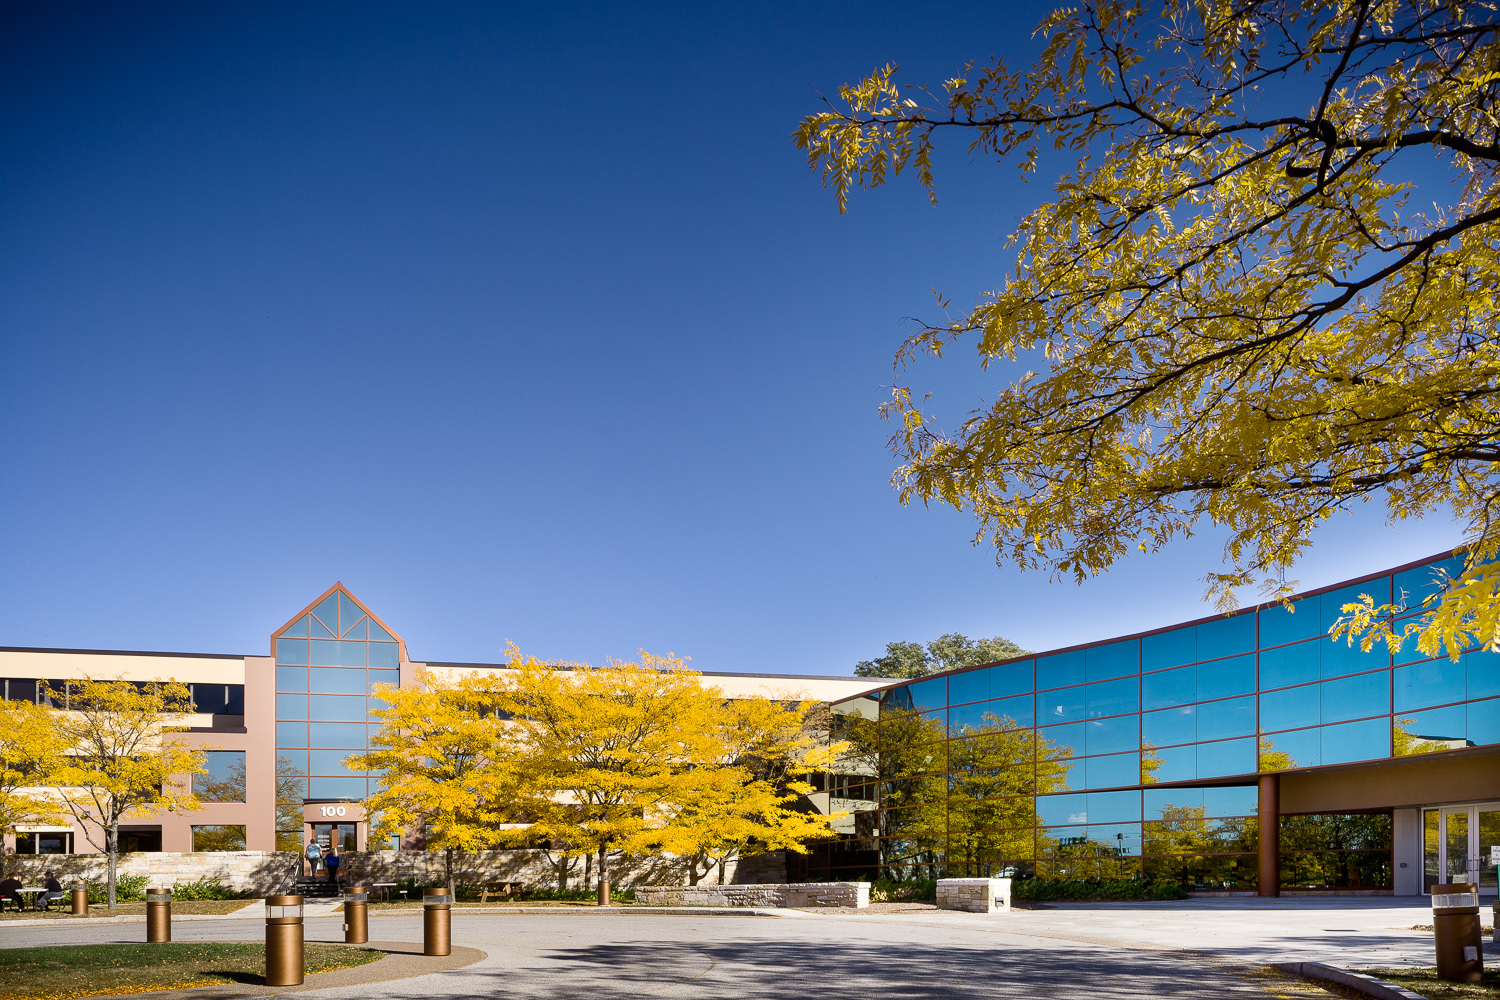 Exterior photo of the GE Healthcare Building in Burlington Vermont by Stina Booth.